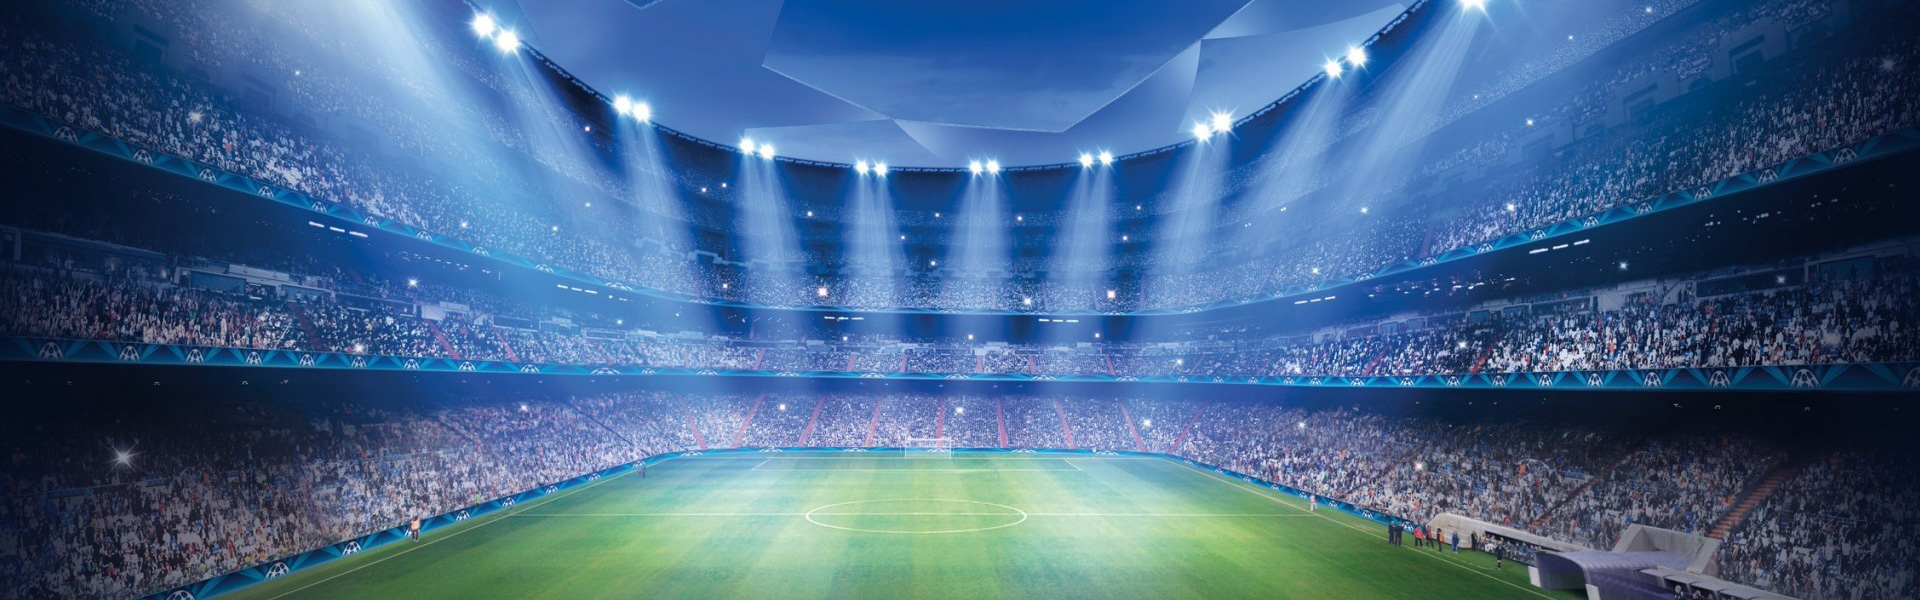 stadium background photos  stadium background vectors and